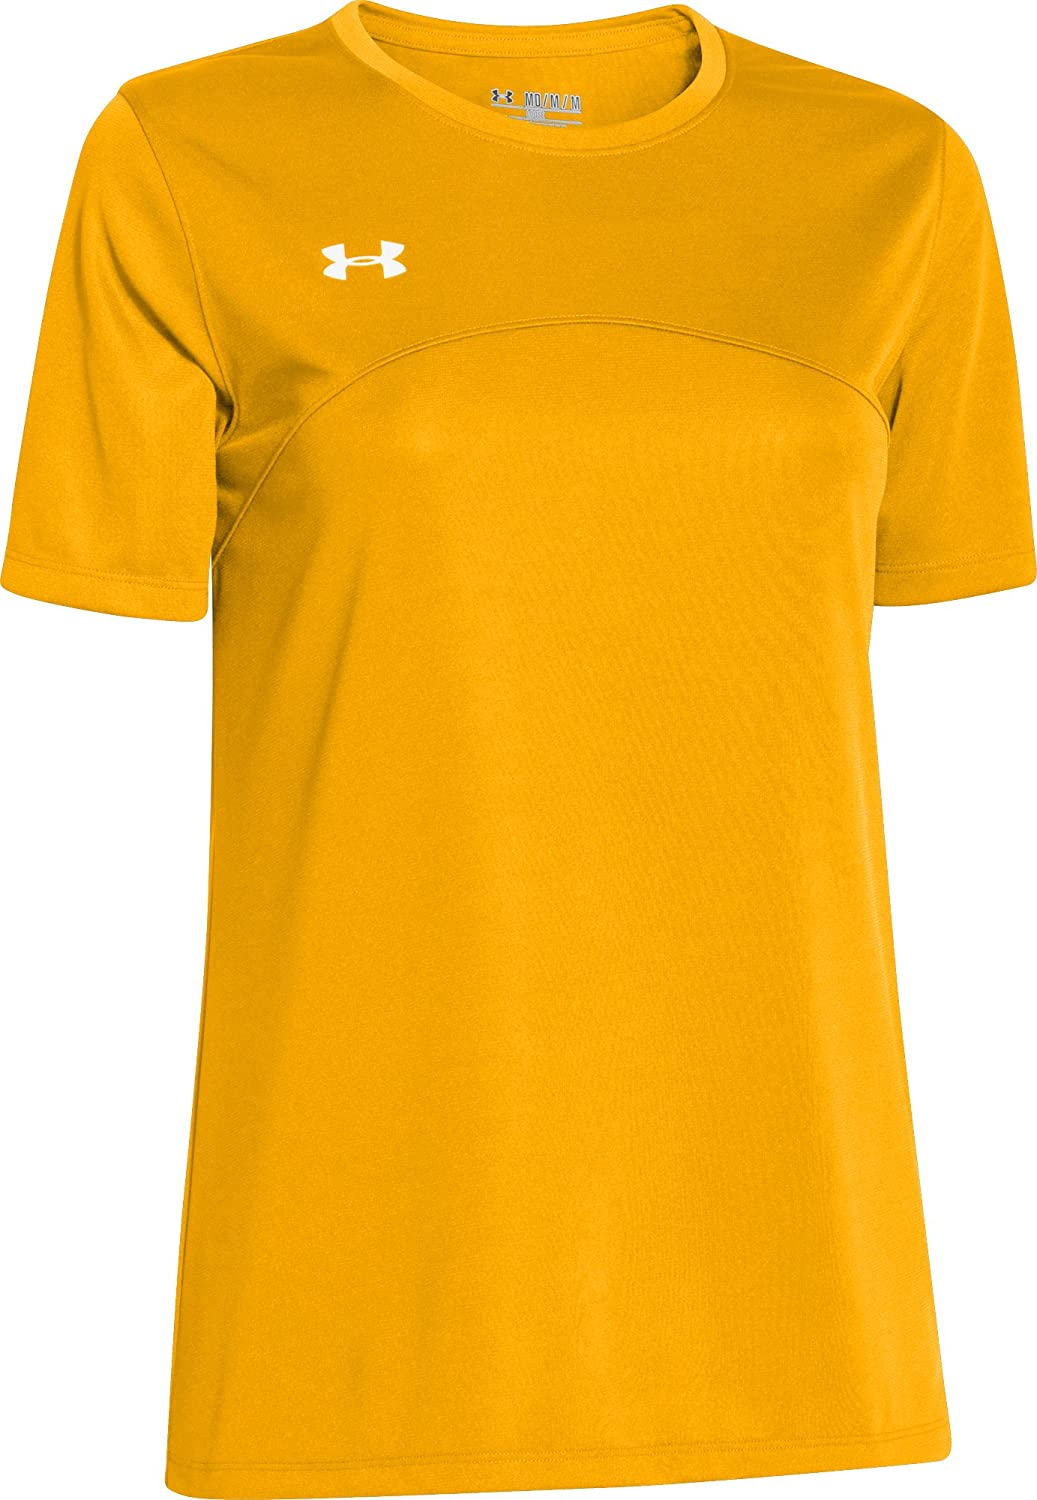 Under Armour Ranking integrated 1st place Women's YELLOW OFFer Jersey Golazo